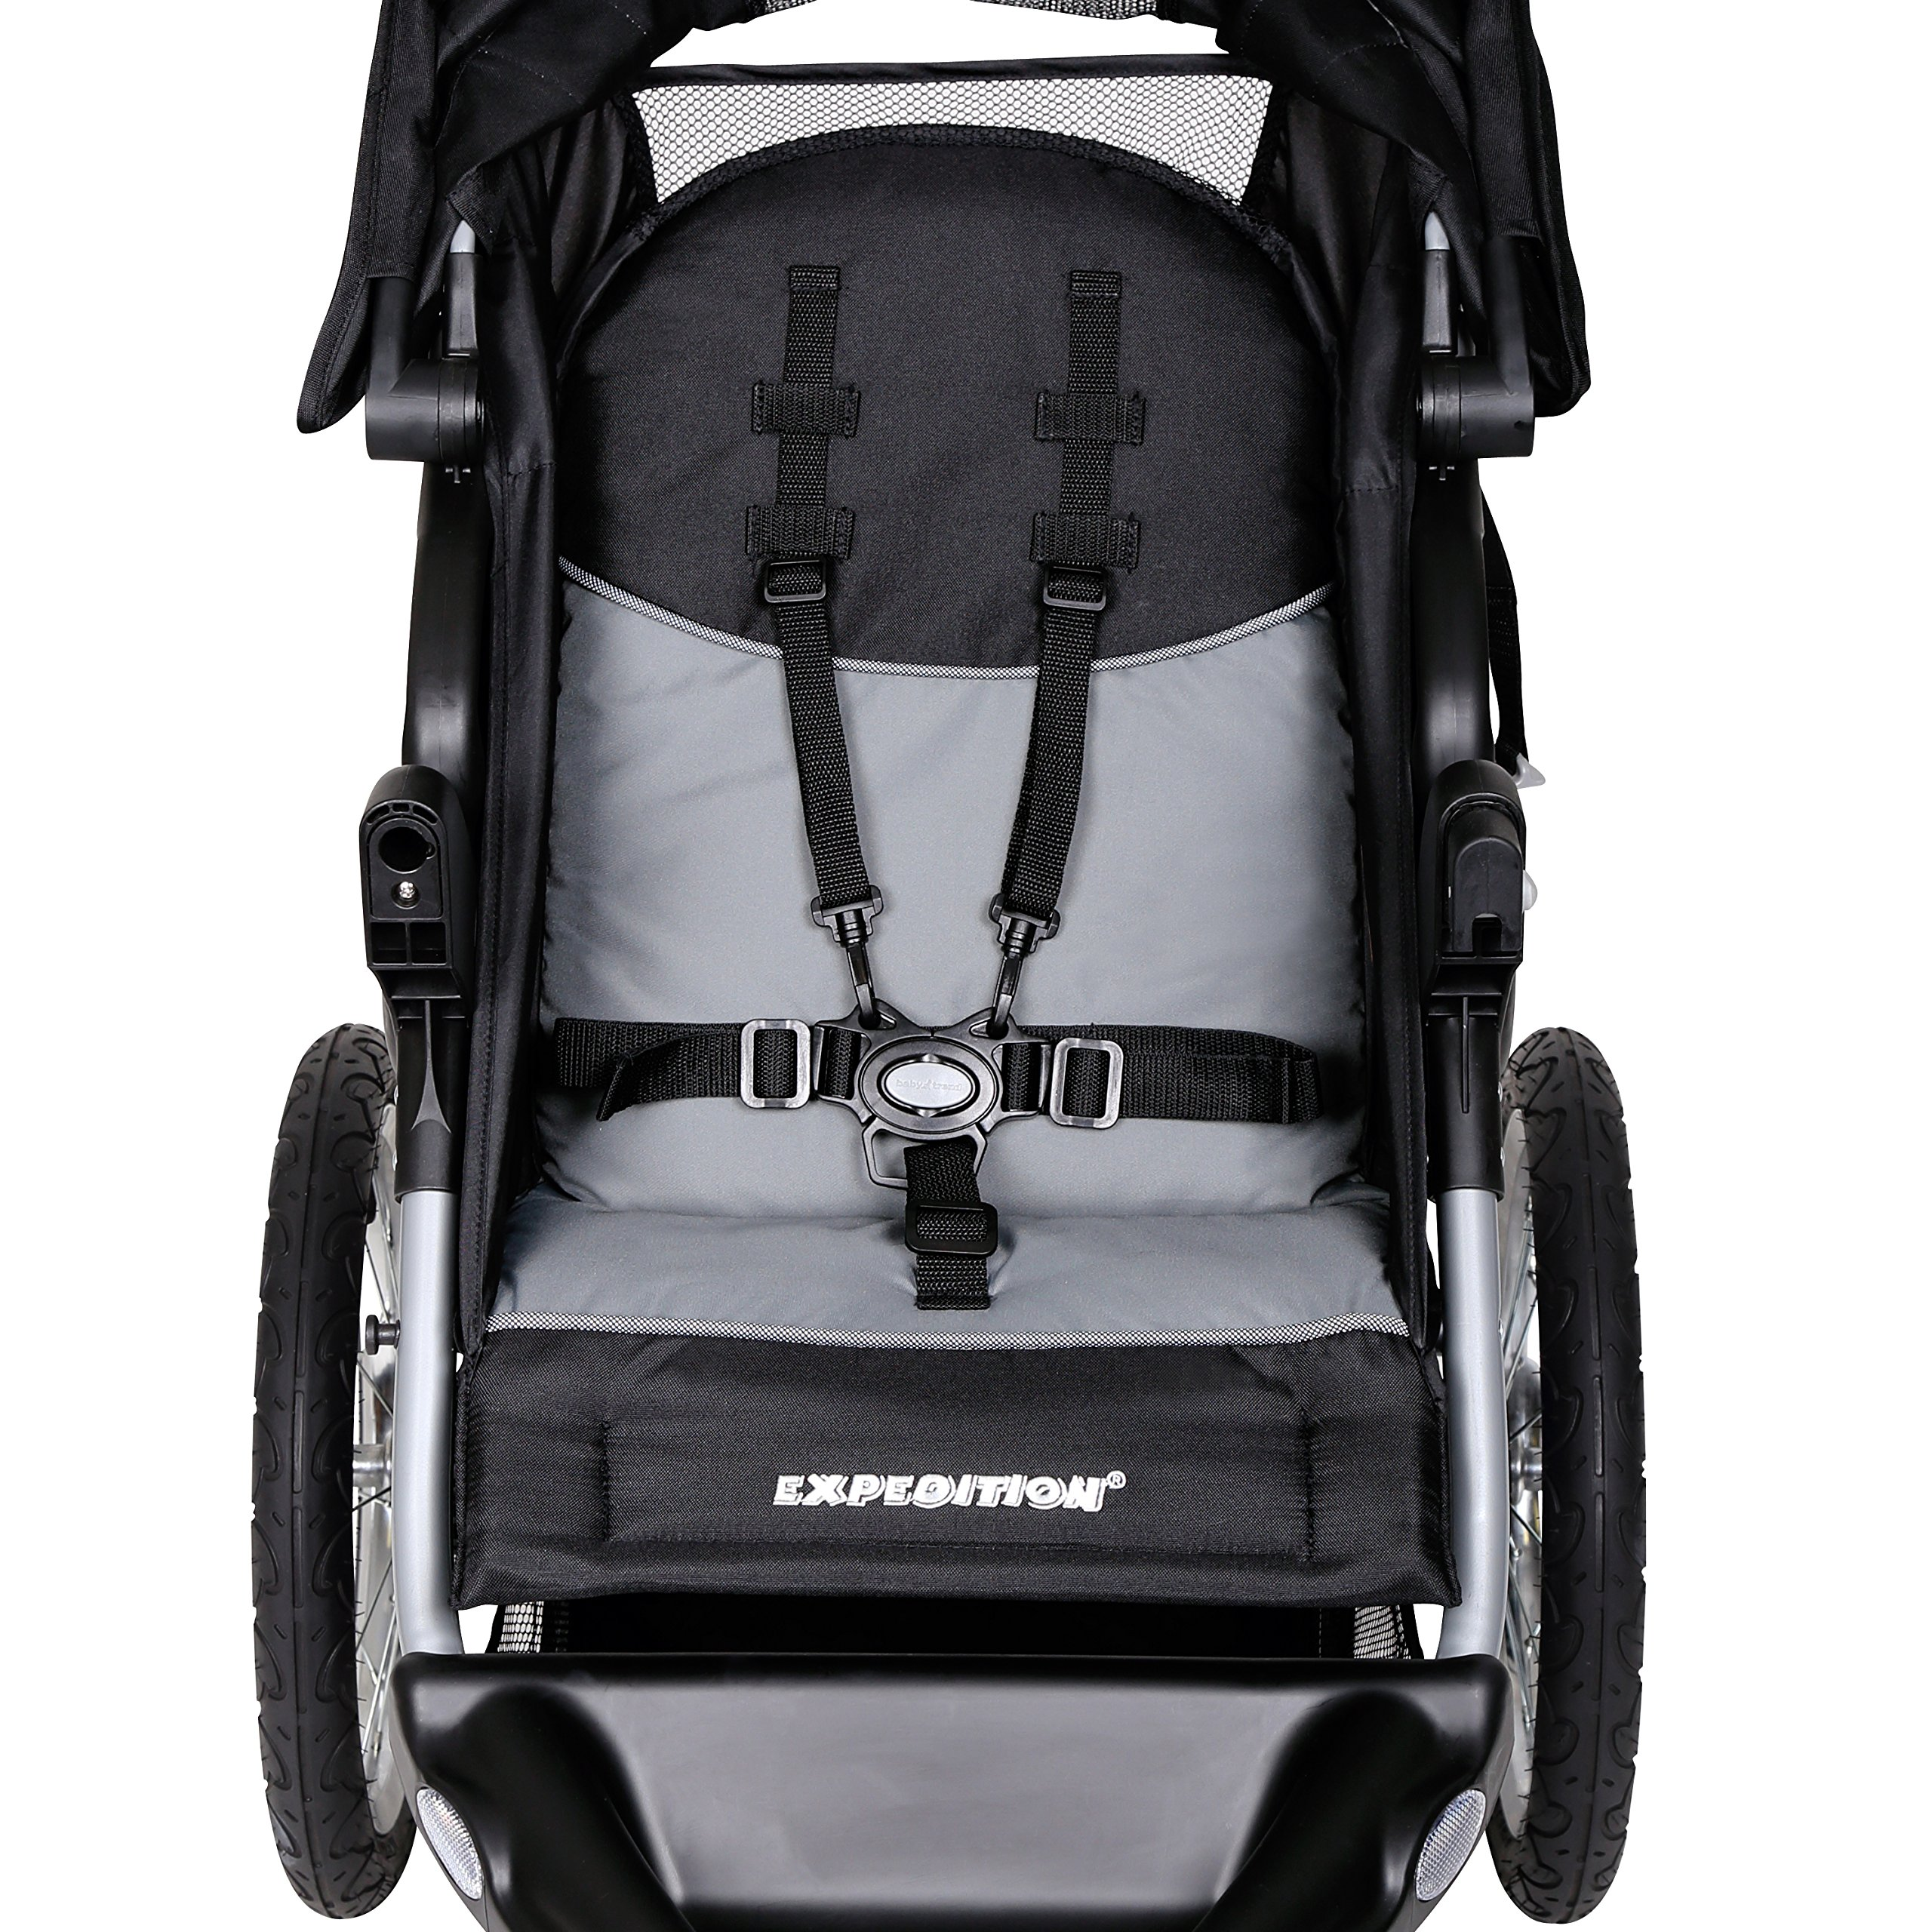 Baby Trend Expedition Jogger Travel System, Millennium White by Baby Trend (Image #7)